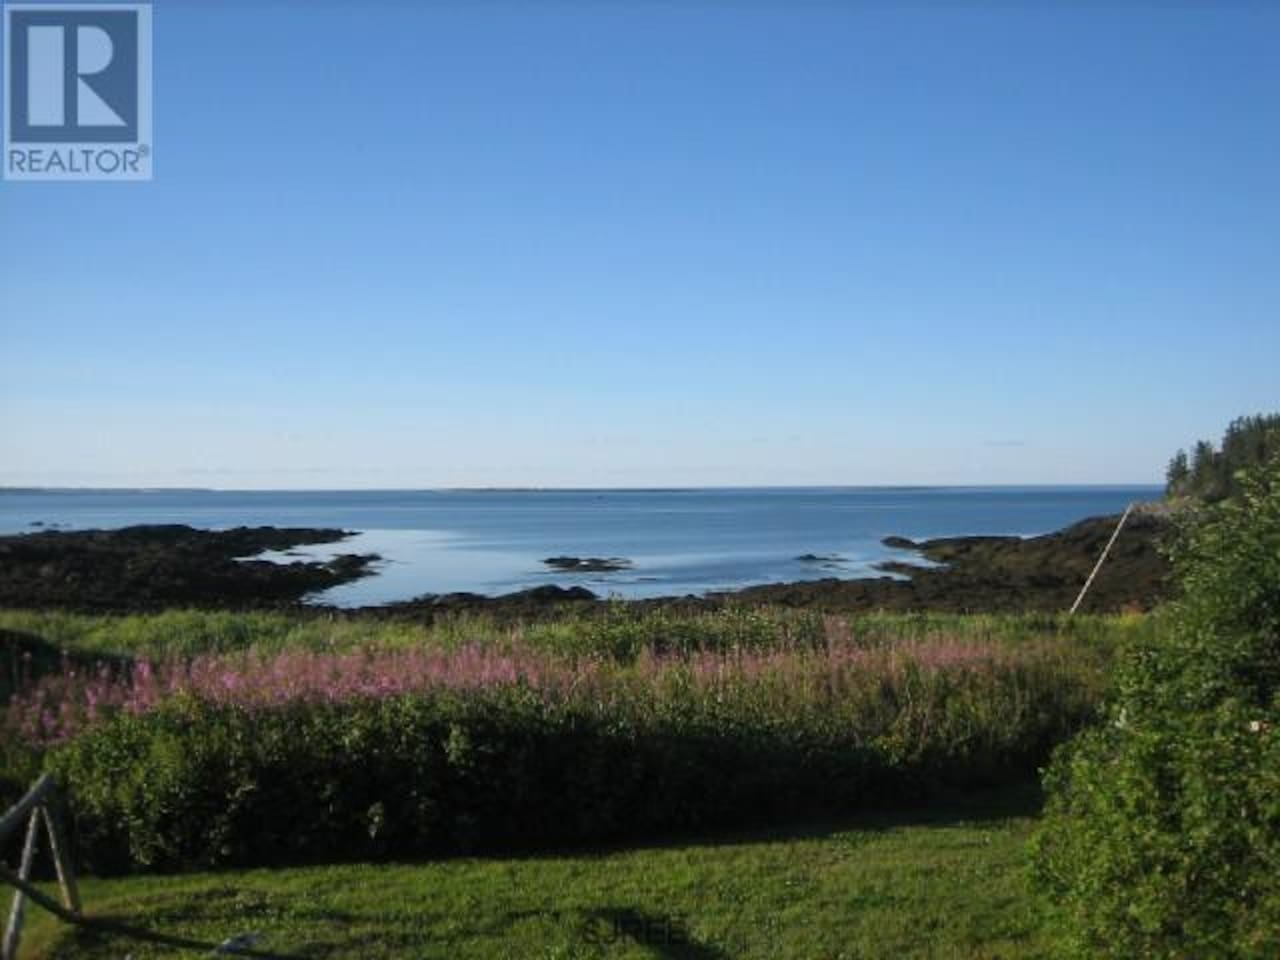 The view off the back deck at low tide: steps to the beach and ocean.